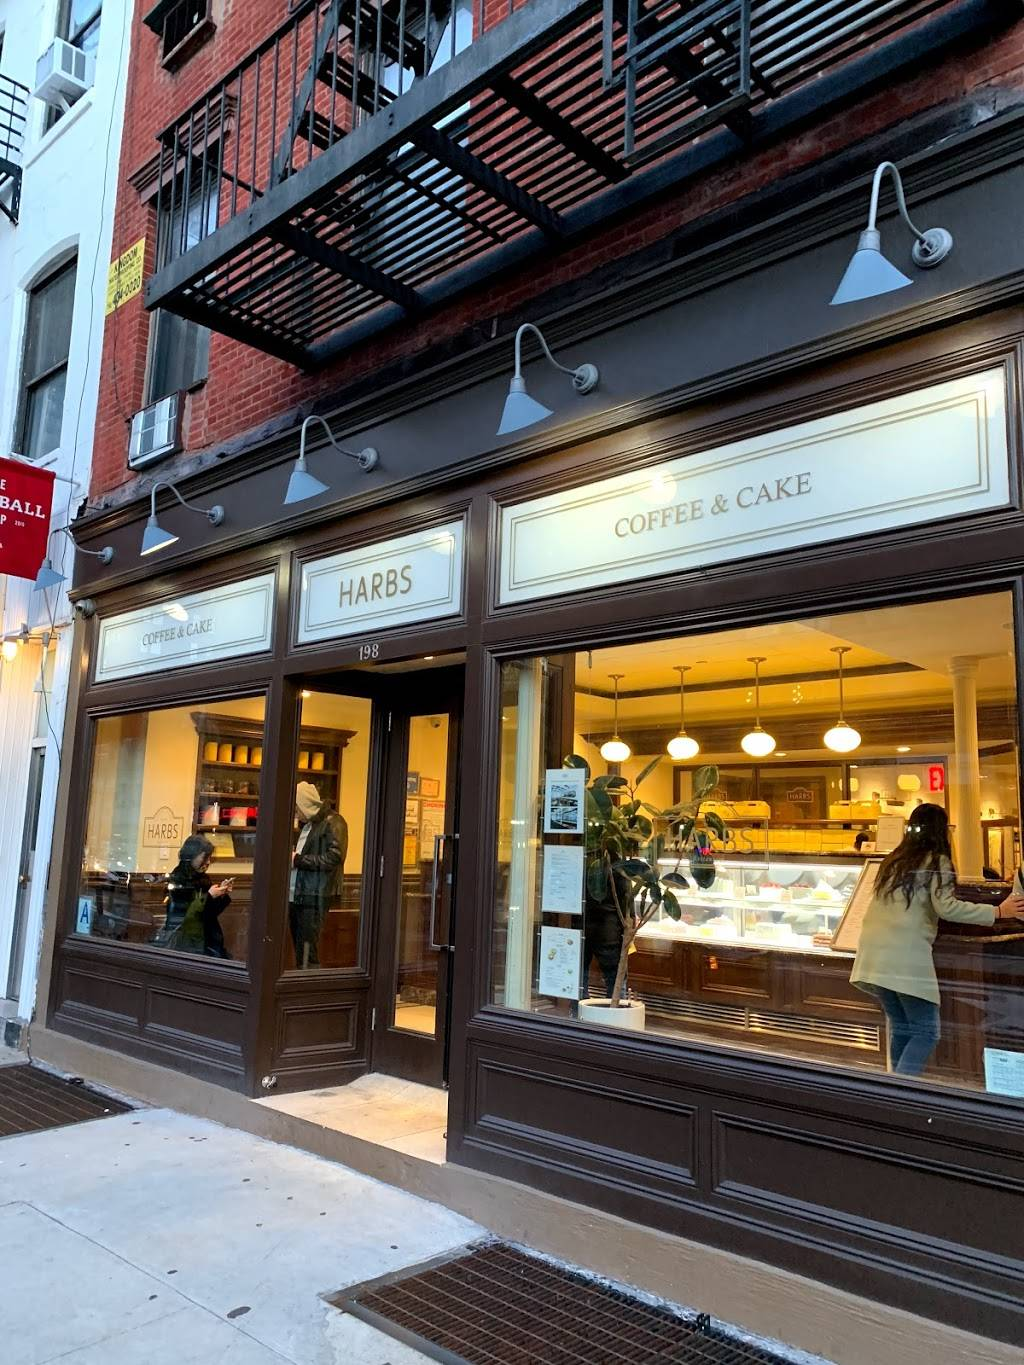 HARBS — Chelsea Store | cafe | 198 9th Ave, New York, NY 10011, USA | 6463366888 OR +1 646-336-6888